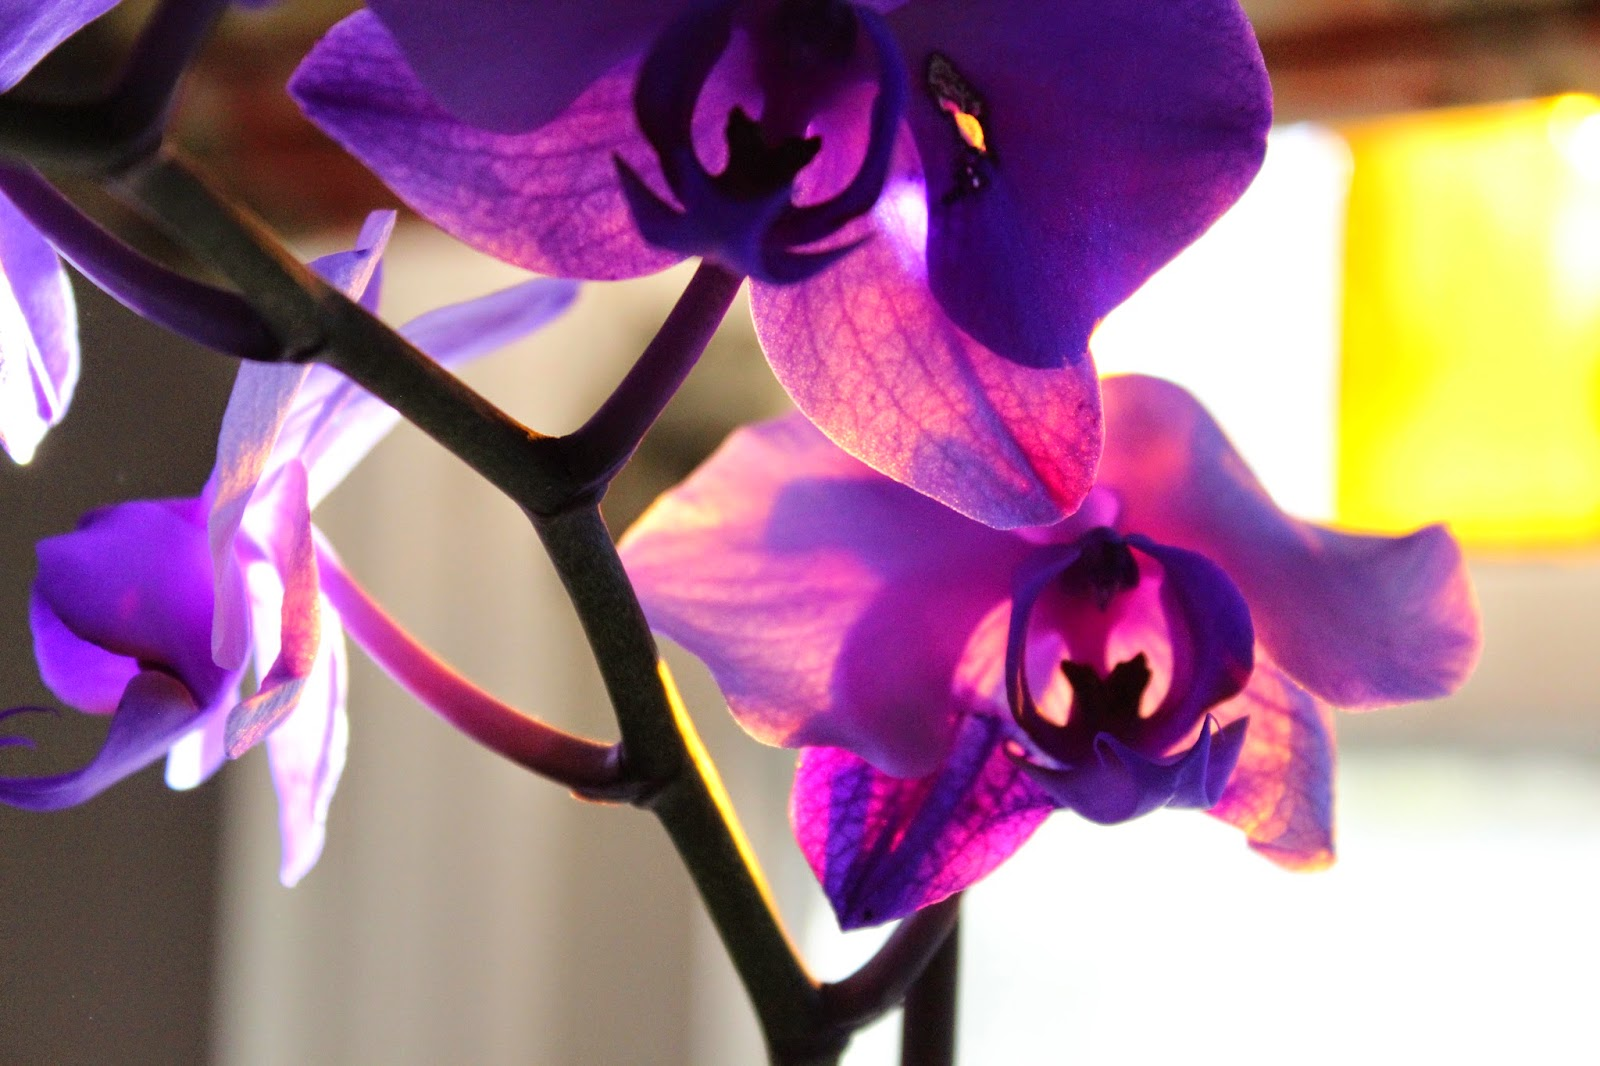 Sunlight through the Purple Orchid by Madder Hatter